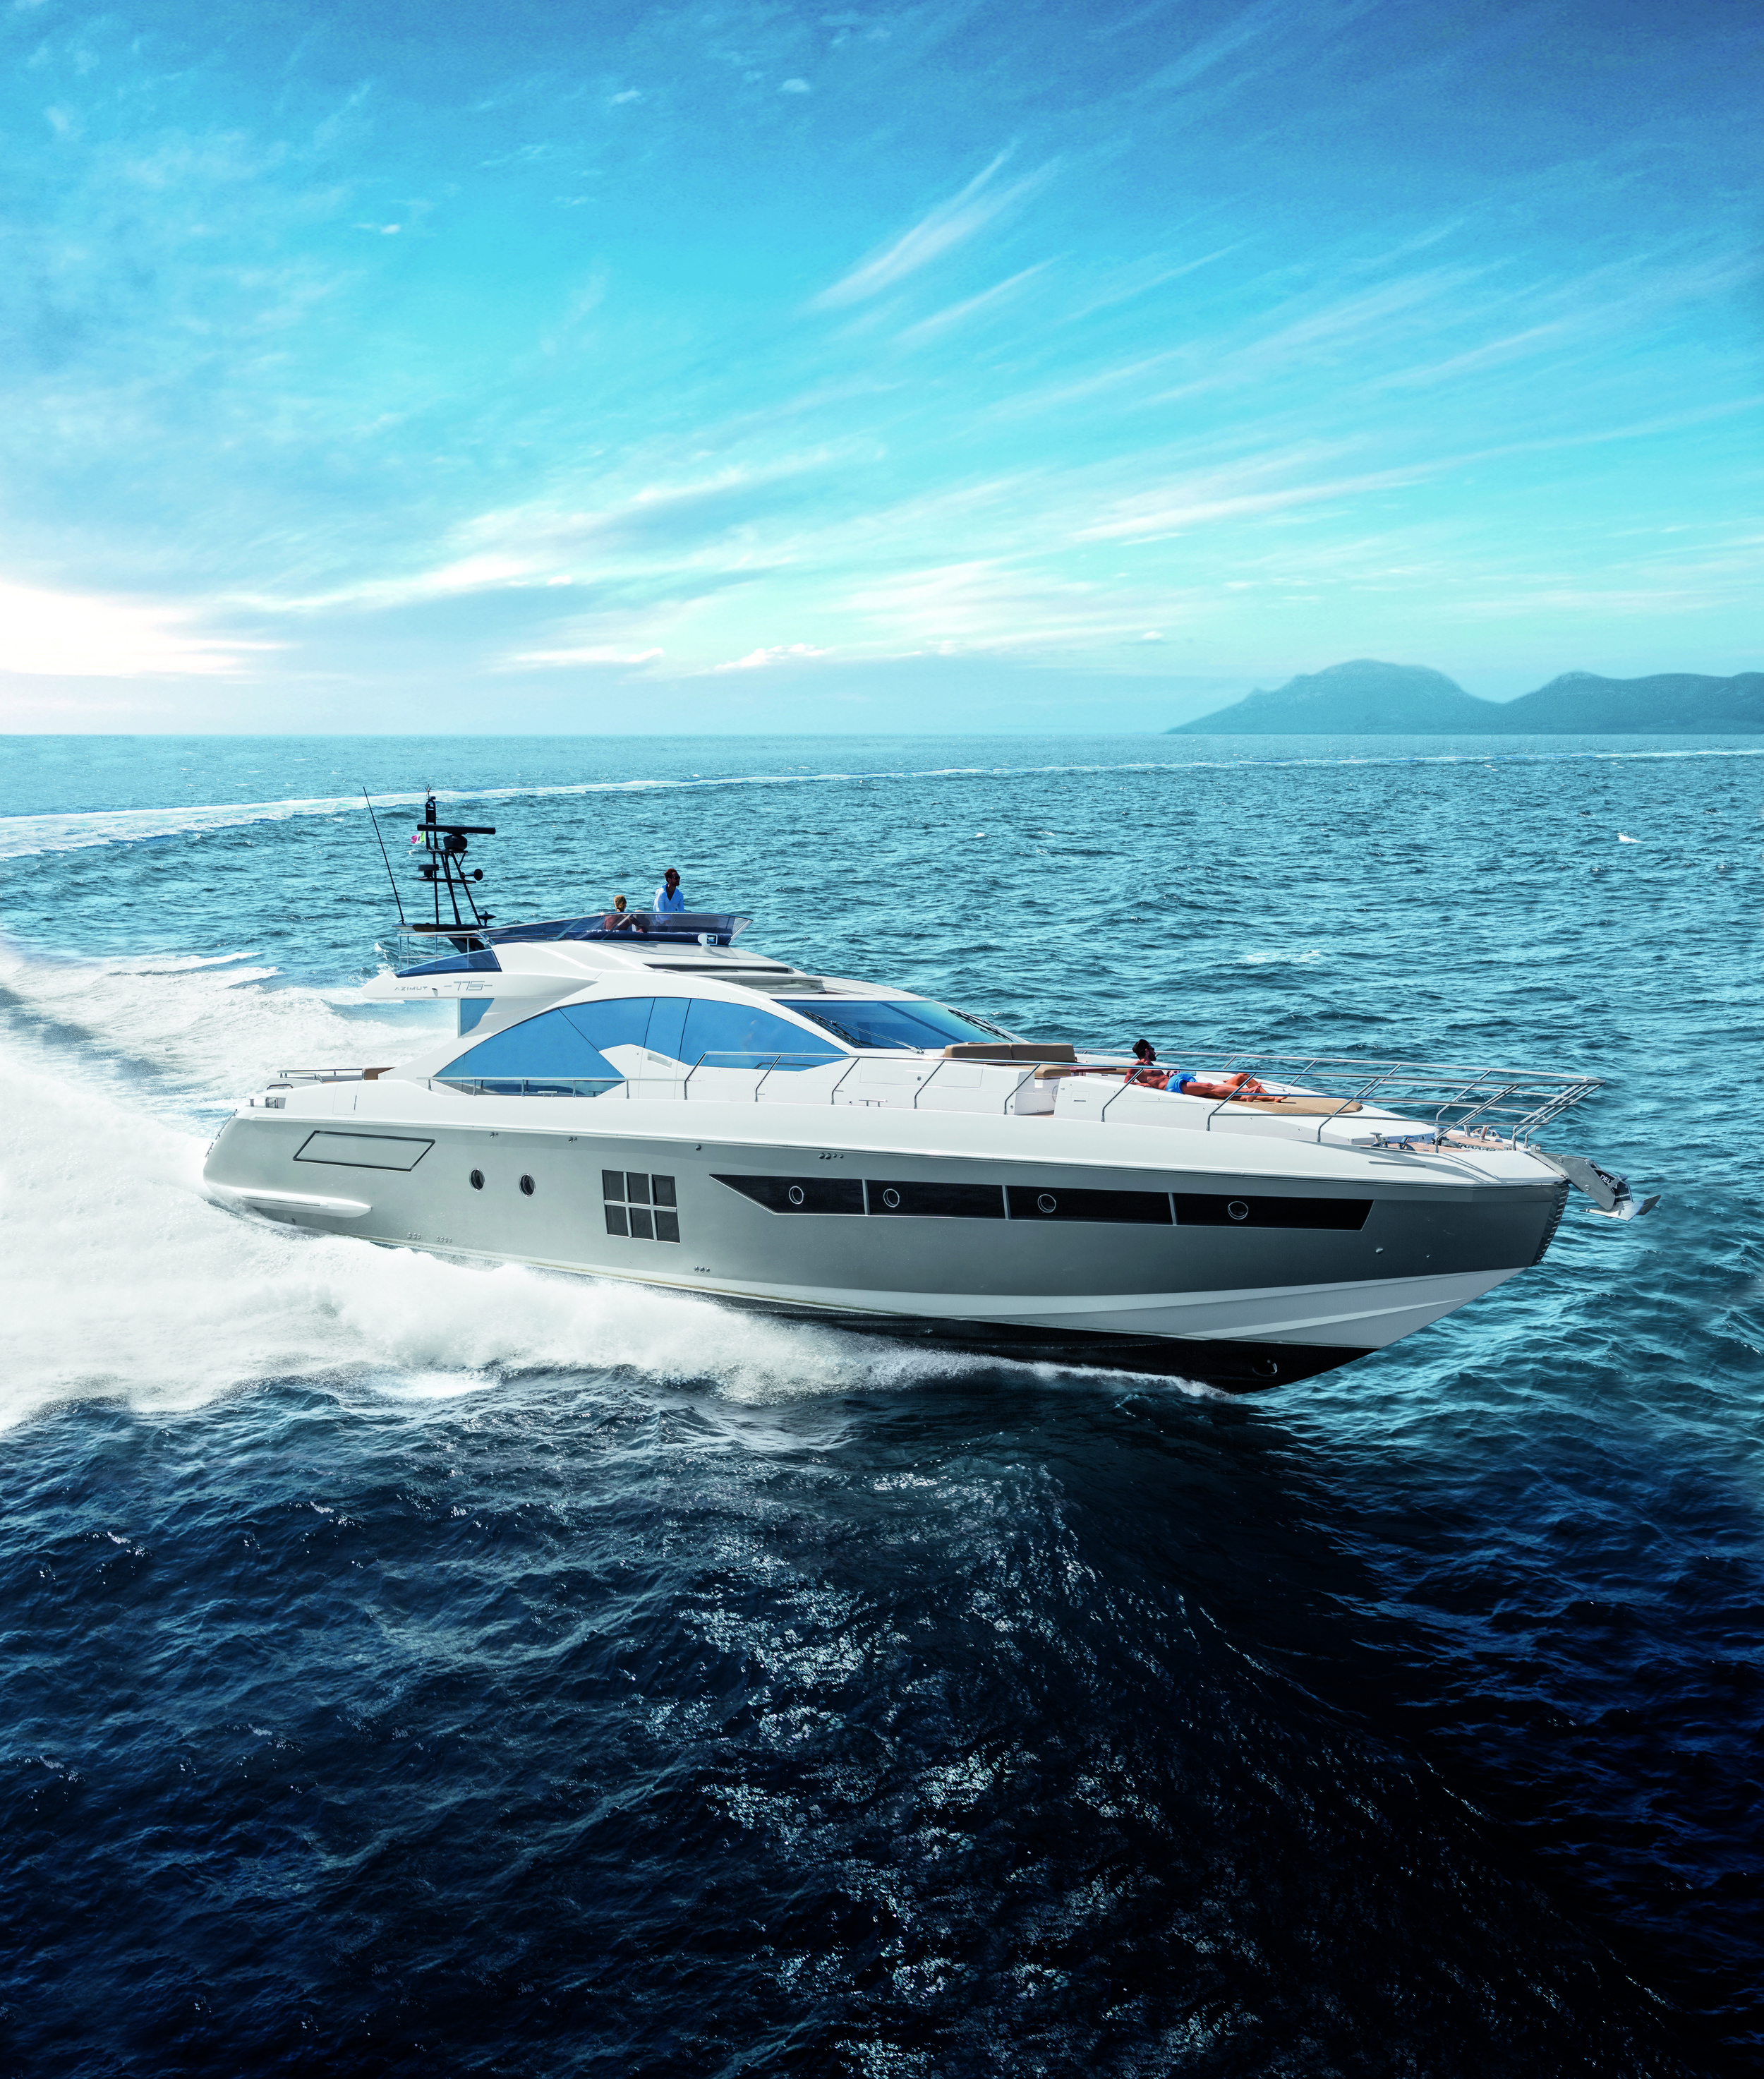 S Collection  Blends sports look and elegance thanks to innovative high-tech solutions and high performance materials for desirable, technological yachts.